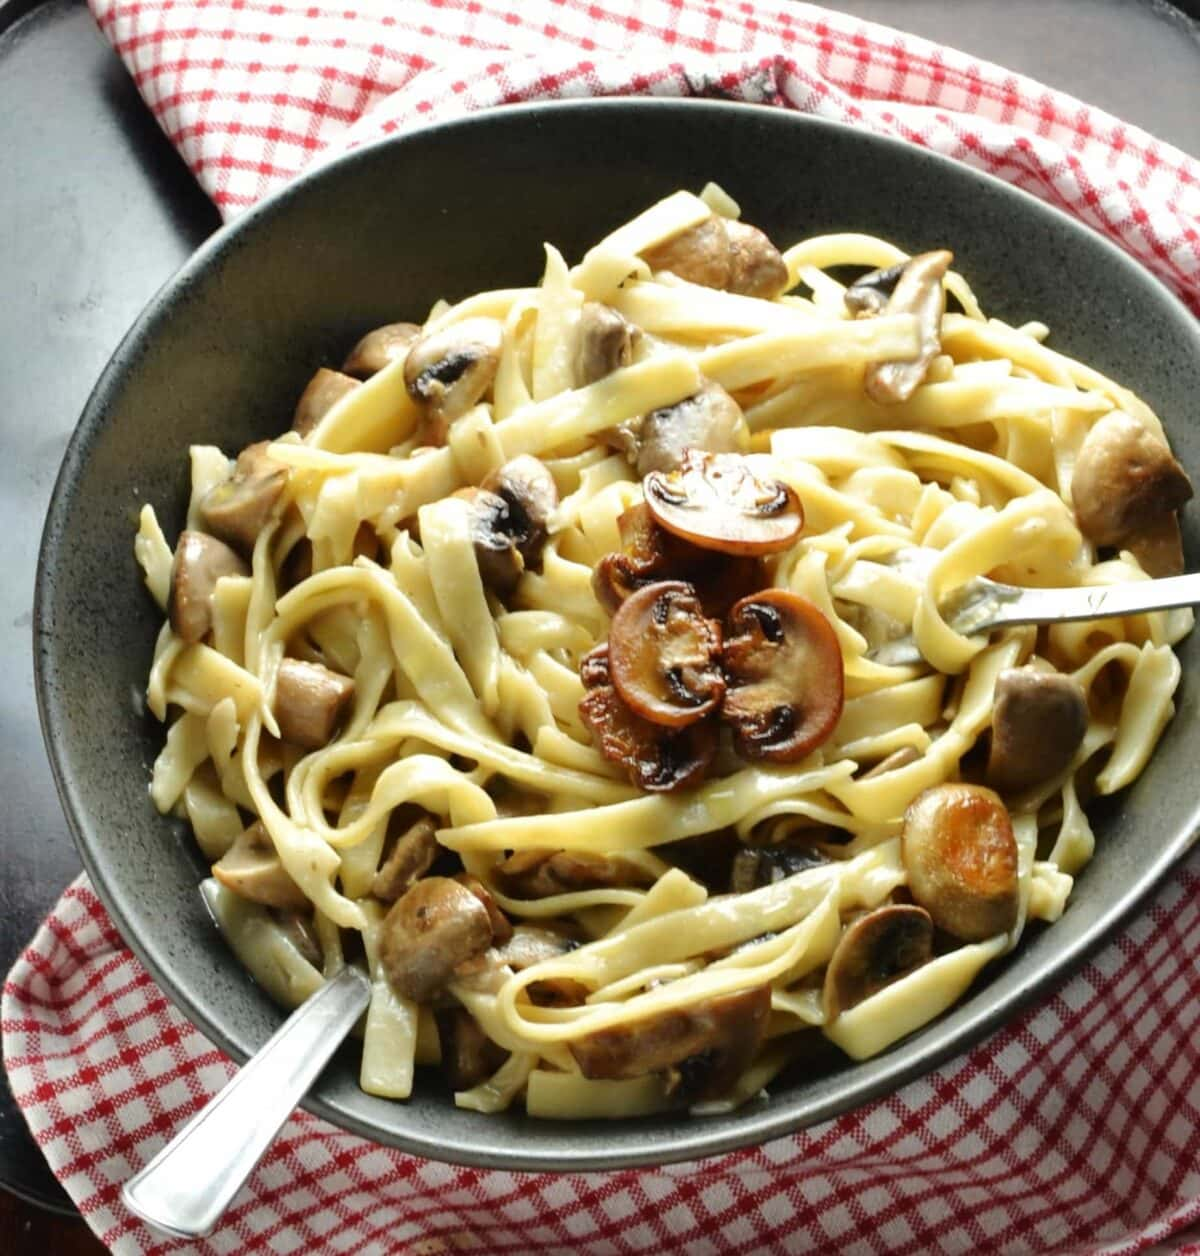 Mushroom tagliatelle pasta in dark grey bowl with forks and red-and-white checkered cloth.